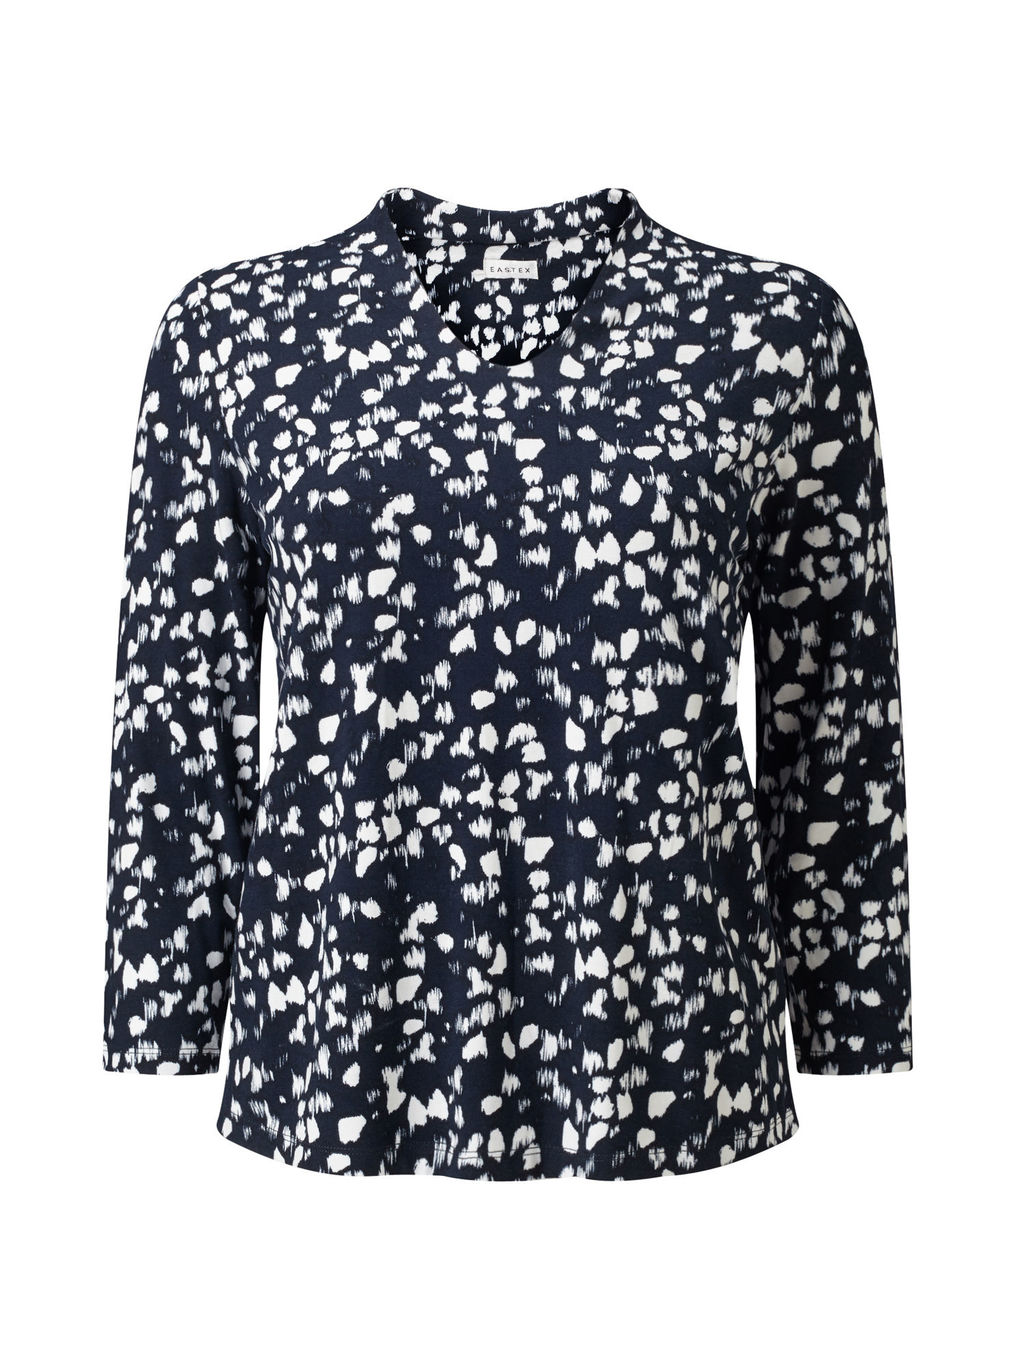 Monotone Jersey Top - neckline: v-neck; secondary colour: white; predominant colour: navy; occasions: casual; length: standard; style: top; fibres: viscose/rayon - stretch; fit: body skimming; sleeve length: long sleeve; sleeve style: standard; pattern type: fabric; pattern: patterned/print; texture group: jersey - stretchy/drapey; multicoloured: multicoloured; season: s/s 2016; wardrobe: highlight